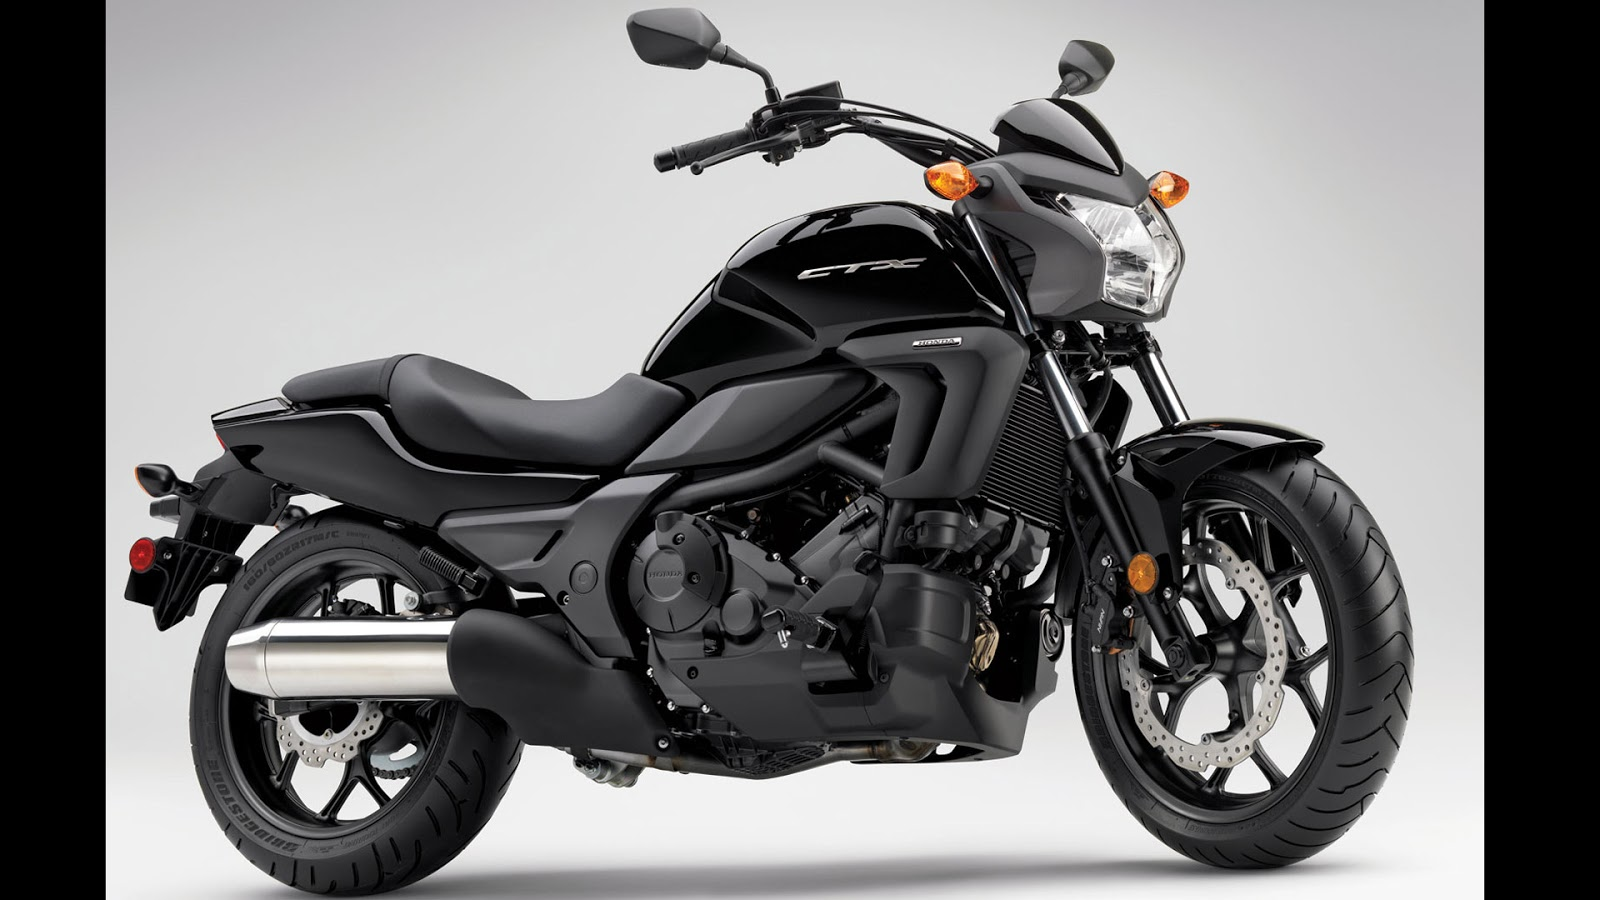 2014 honda ctx700 short review and pictures riders. Black Bedroom Furniture Sets. Home Design Ideas